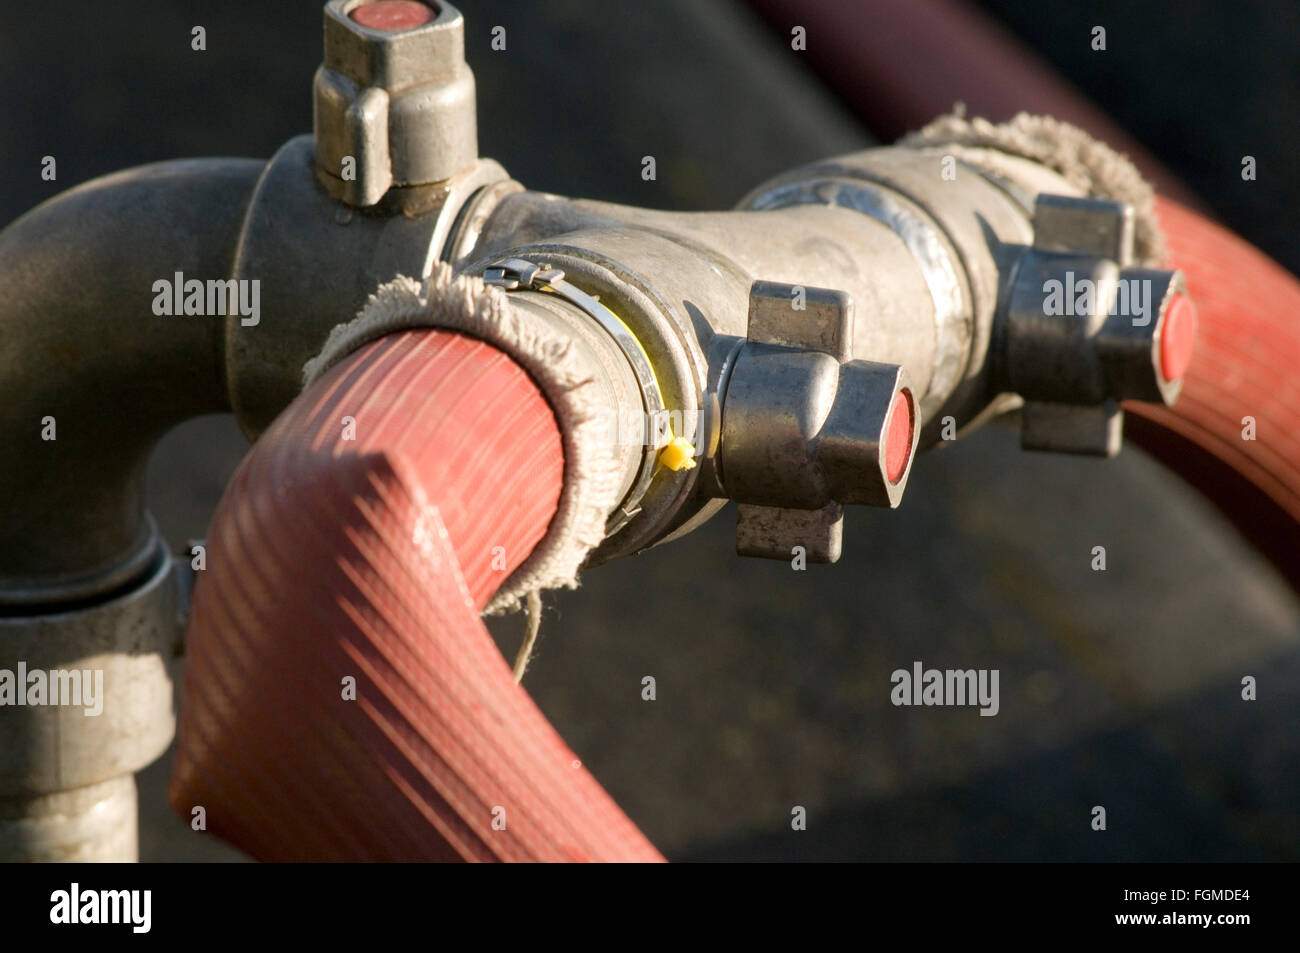 fire hose hoses hydrant hydrants water pipe pipes rubber high pressure flow rate flowing - Stock Image